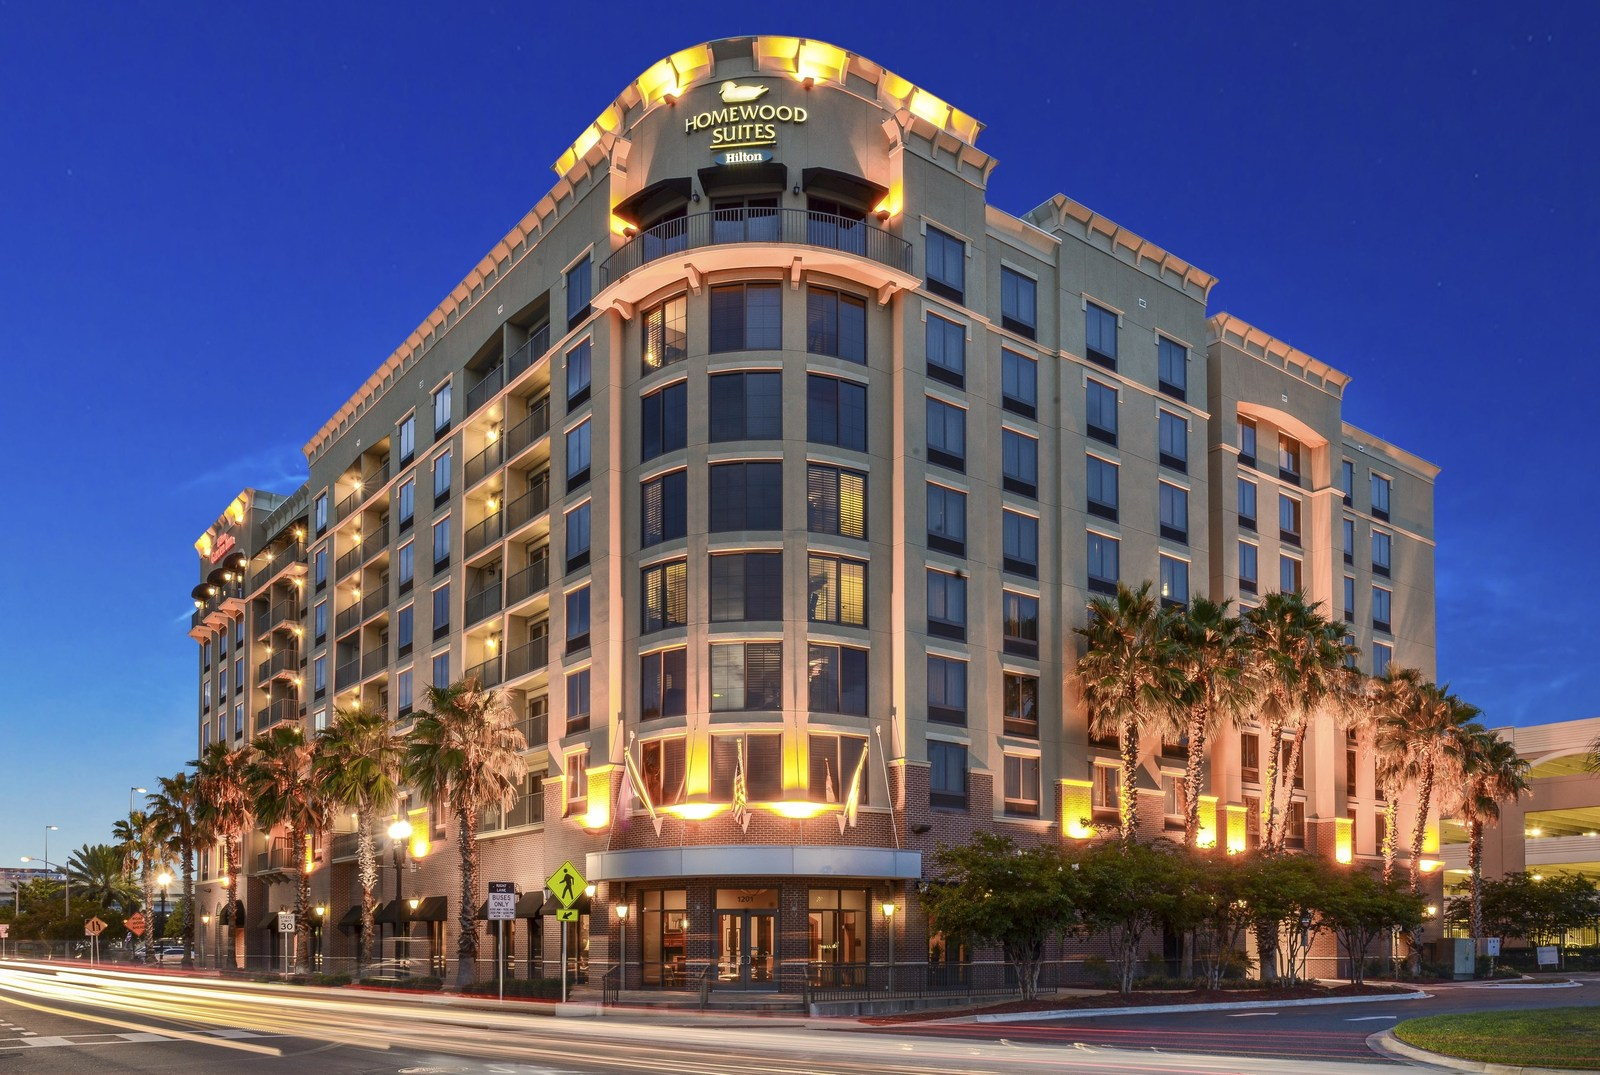 Lingerfelt CommonWealth Acquires Hilton Dual-Branded Hotel in Downtown ...